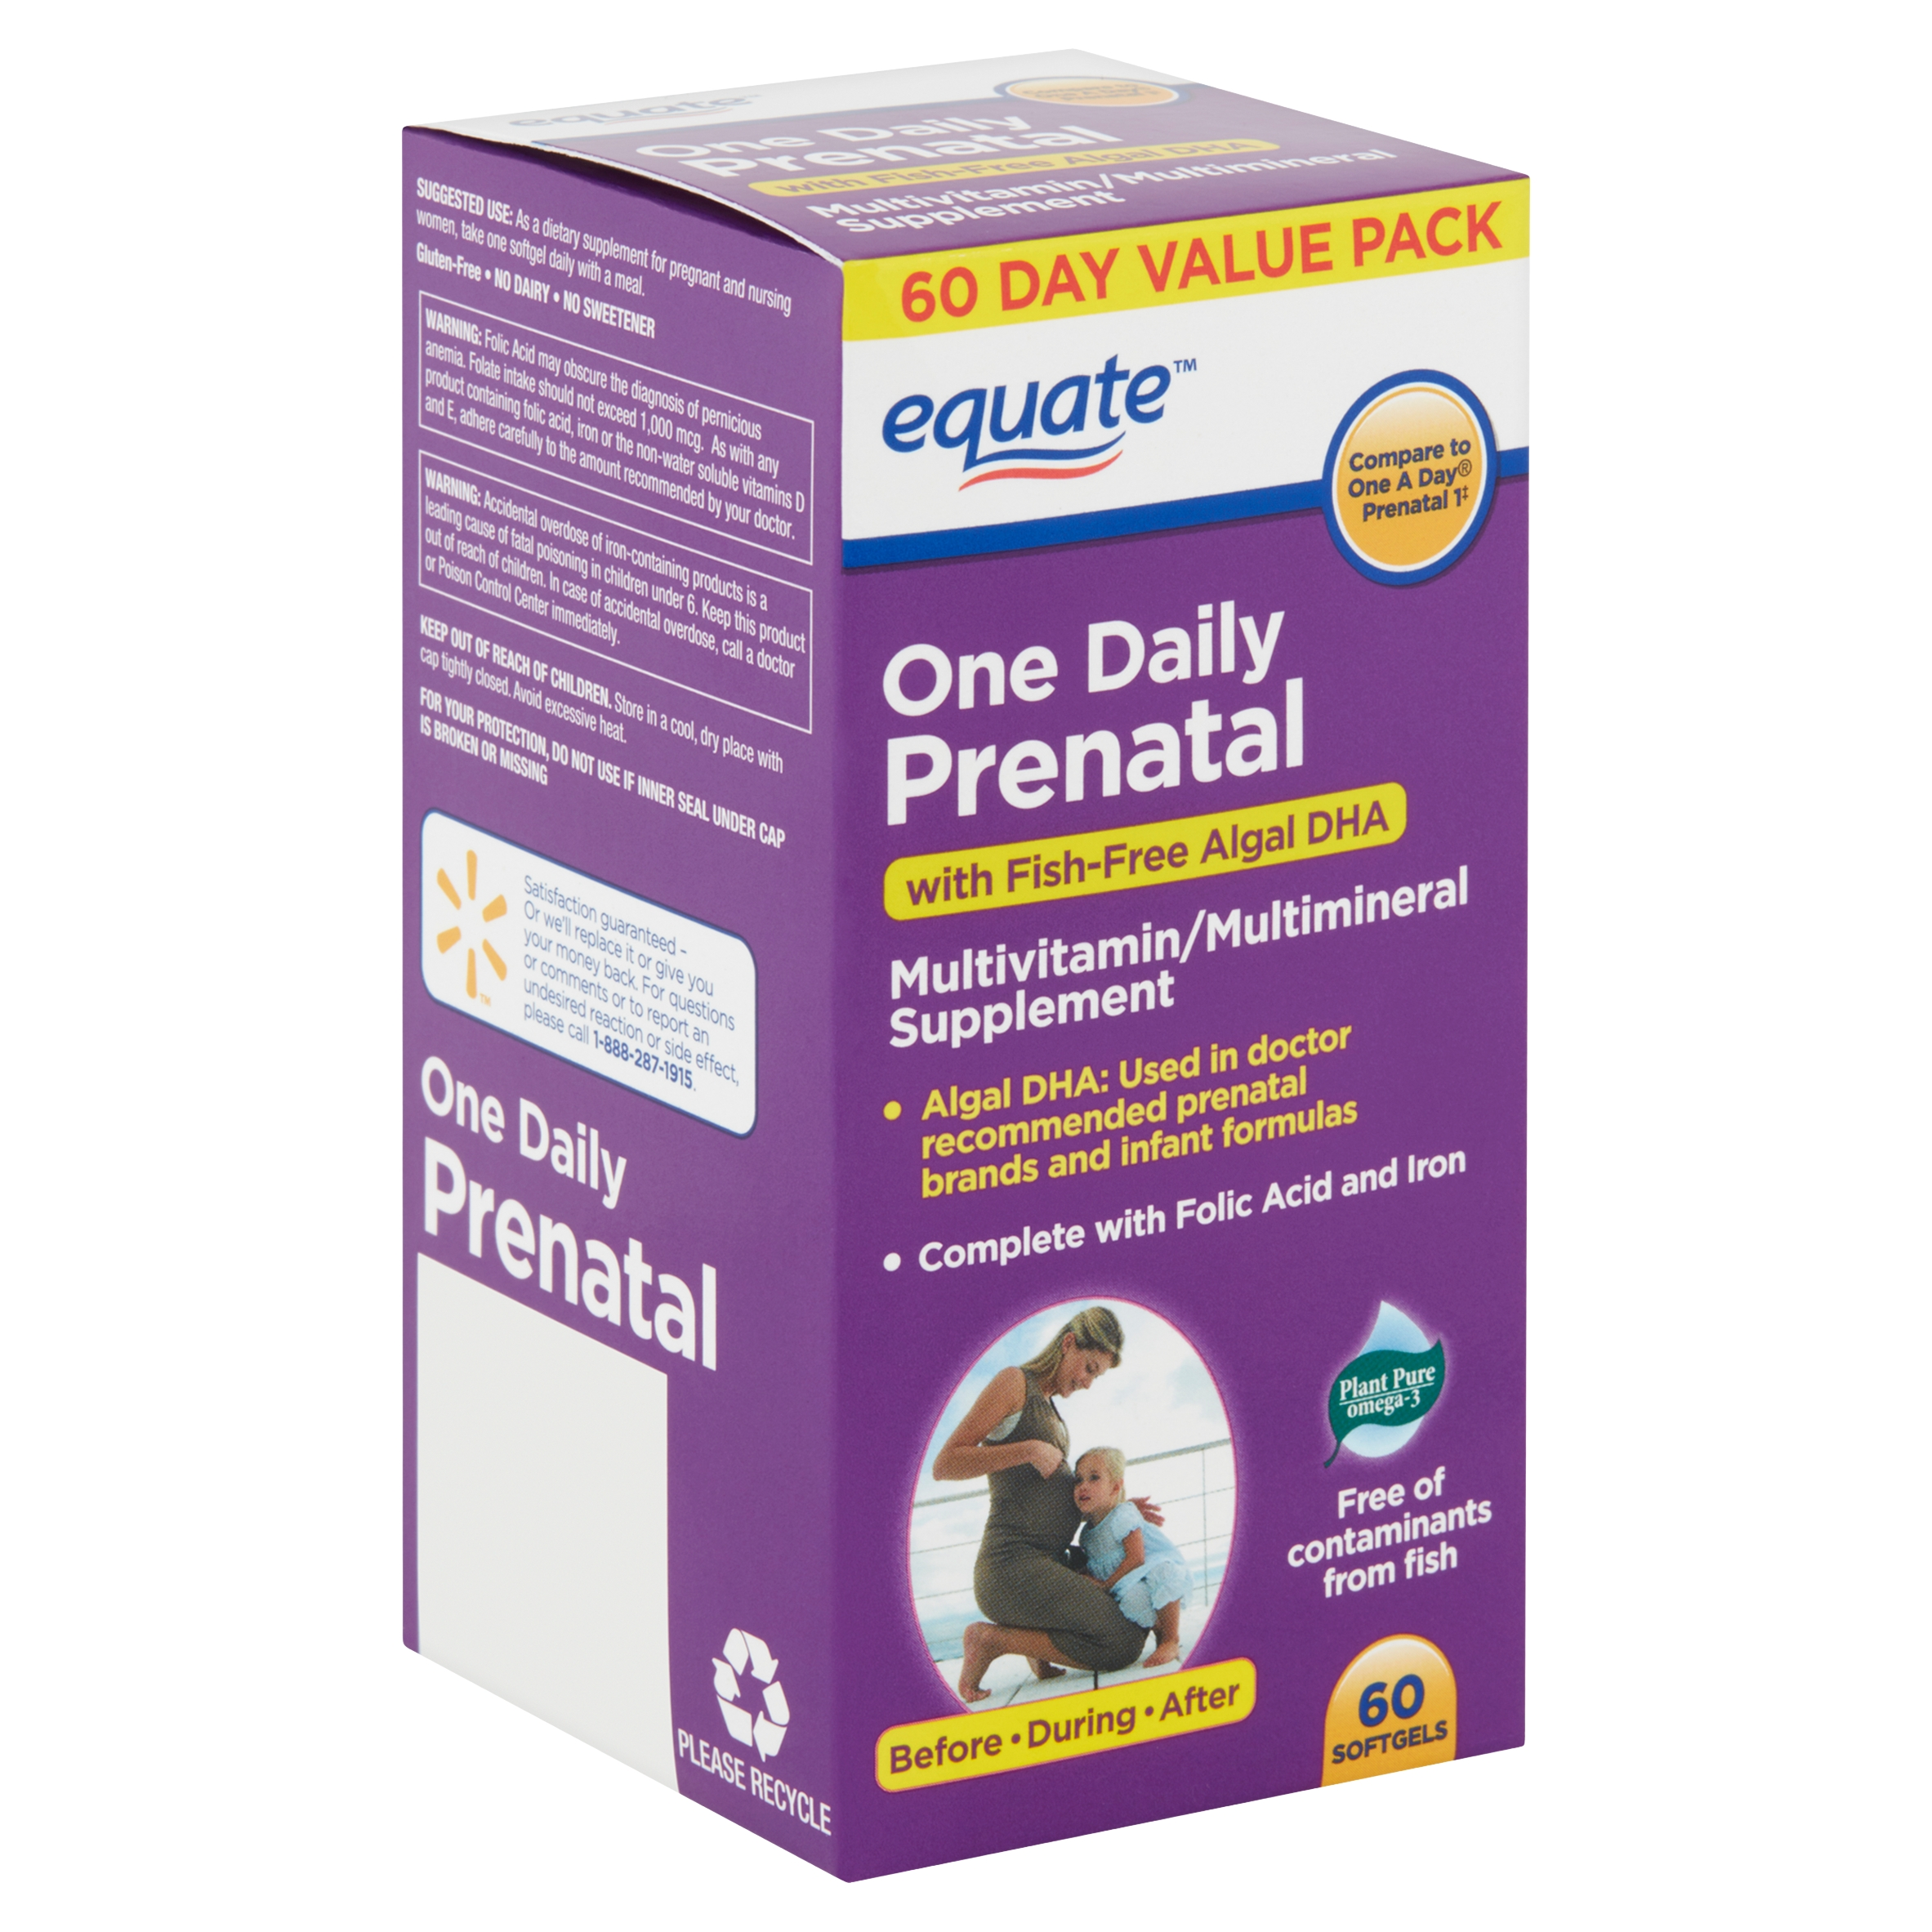 Equate One Daily Prenatal Softgels Value Pack, 60 count